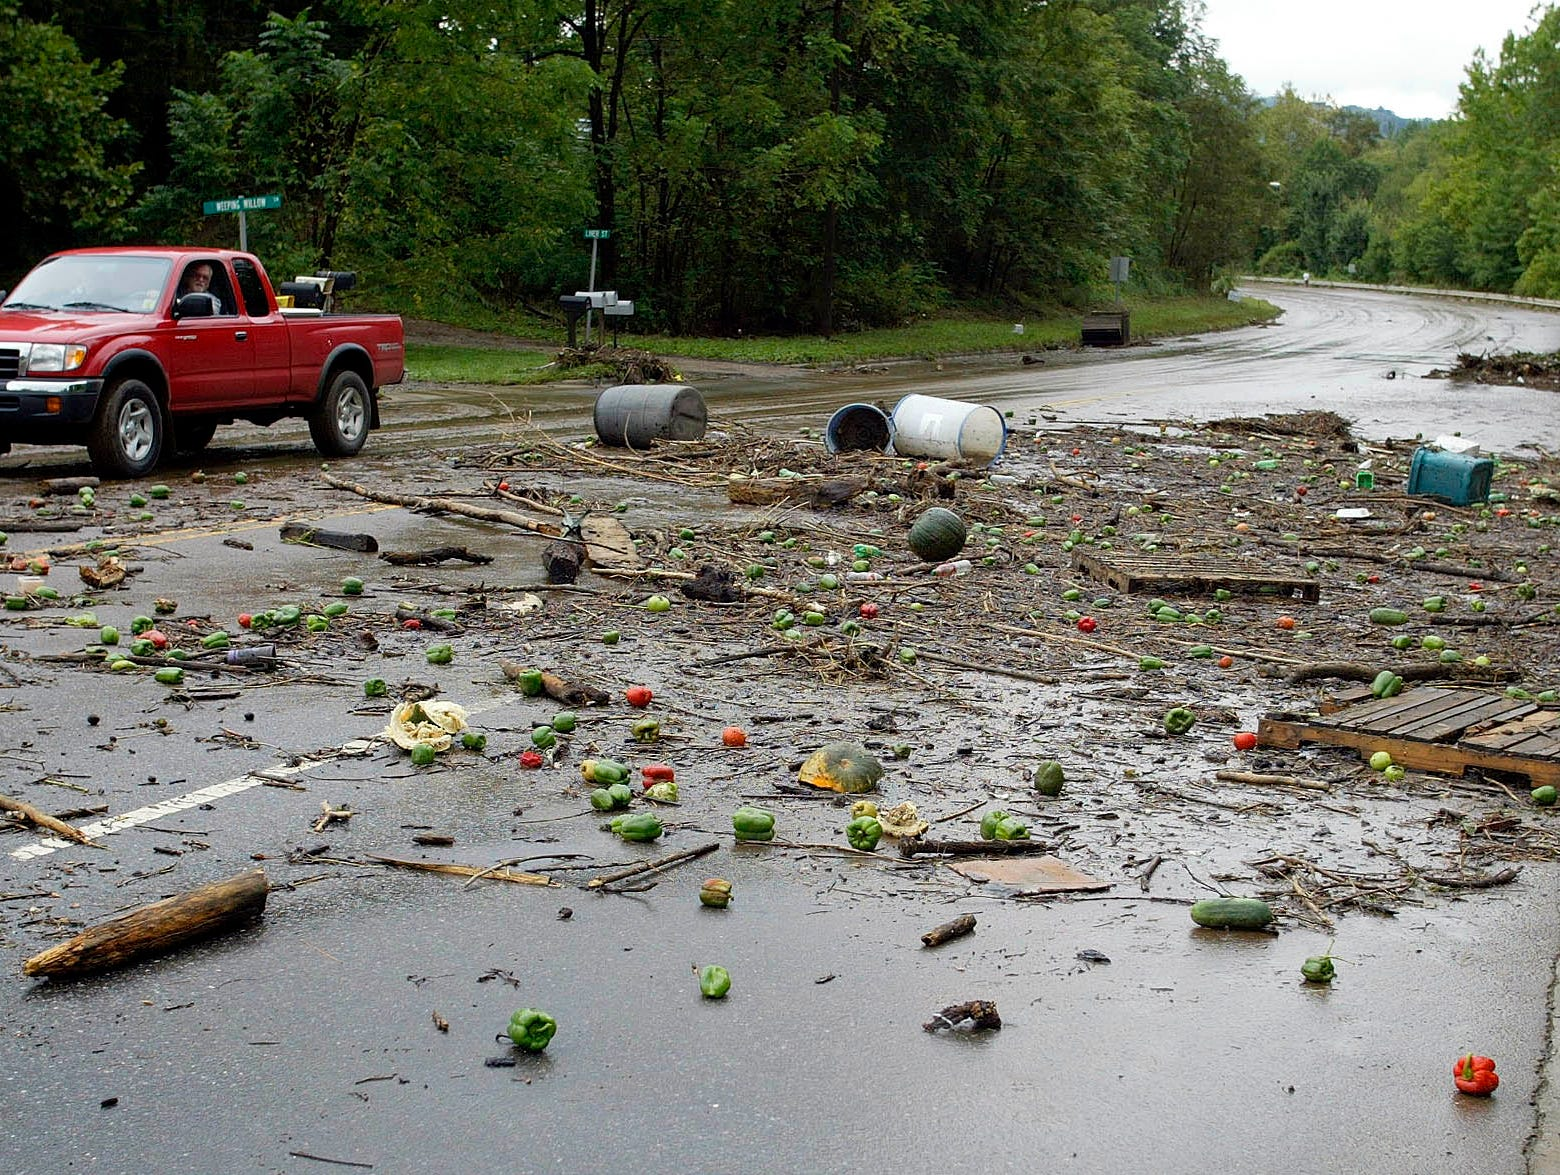 A truck drives through debris left by floodwaters in Canton on Sept. 8, 2004. Remnants of Hurricane Frances have brought heavy rains and flooding to the area.